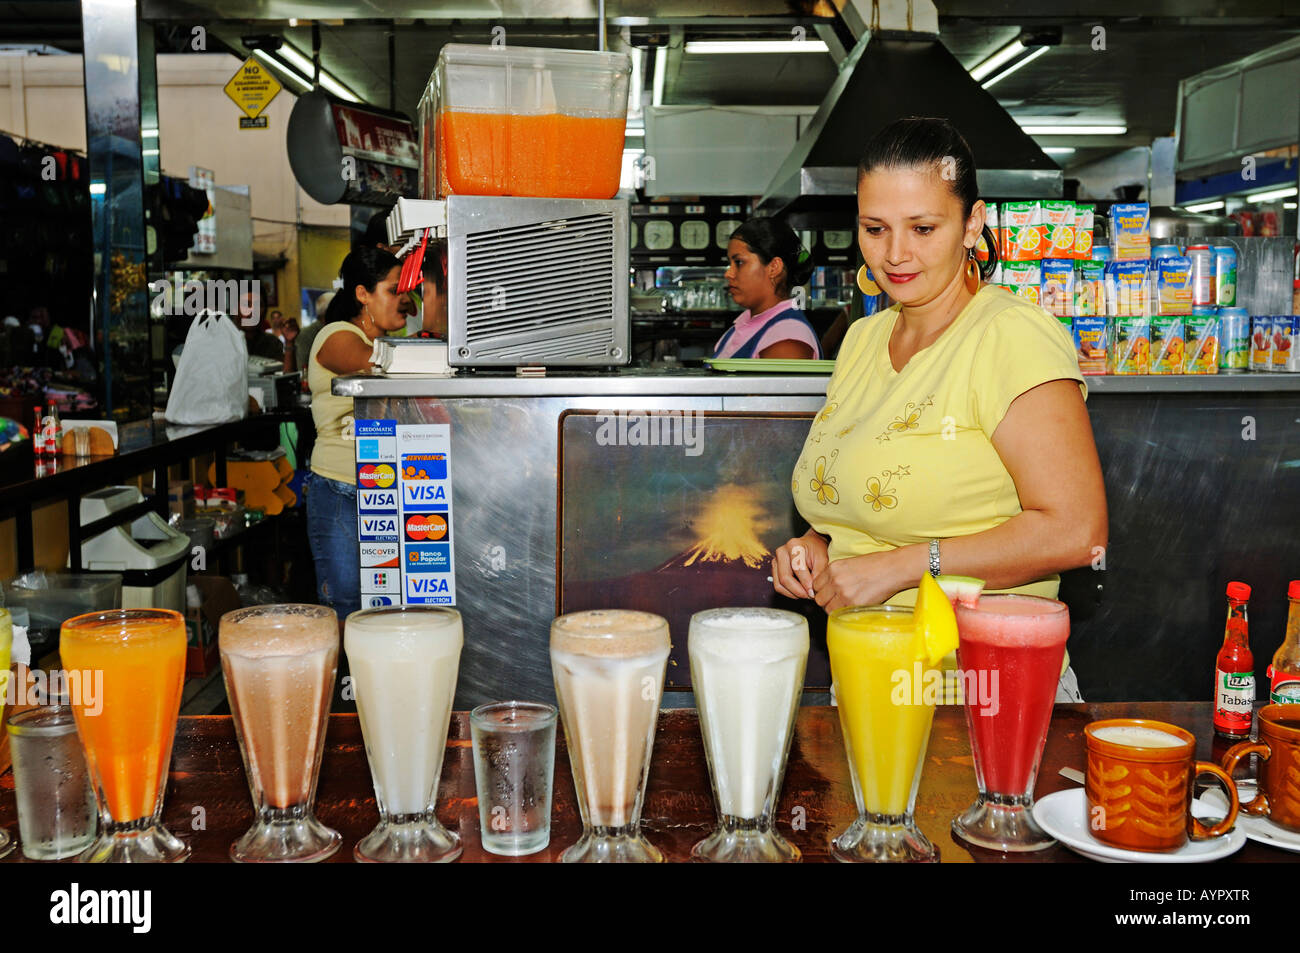 Selection of fruit juices, Costa Rica, Central America - Stock Image